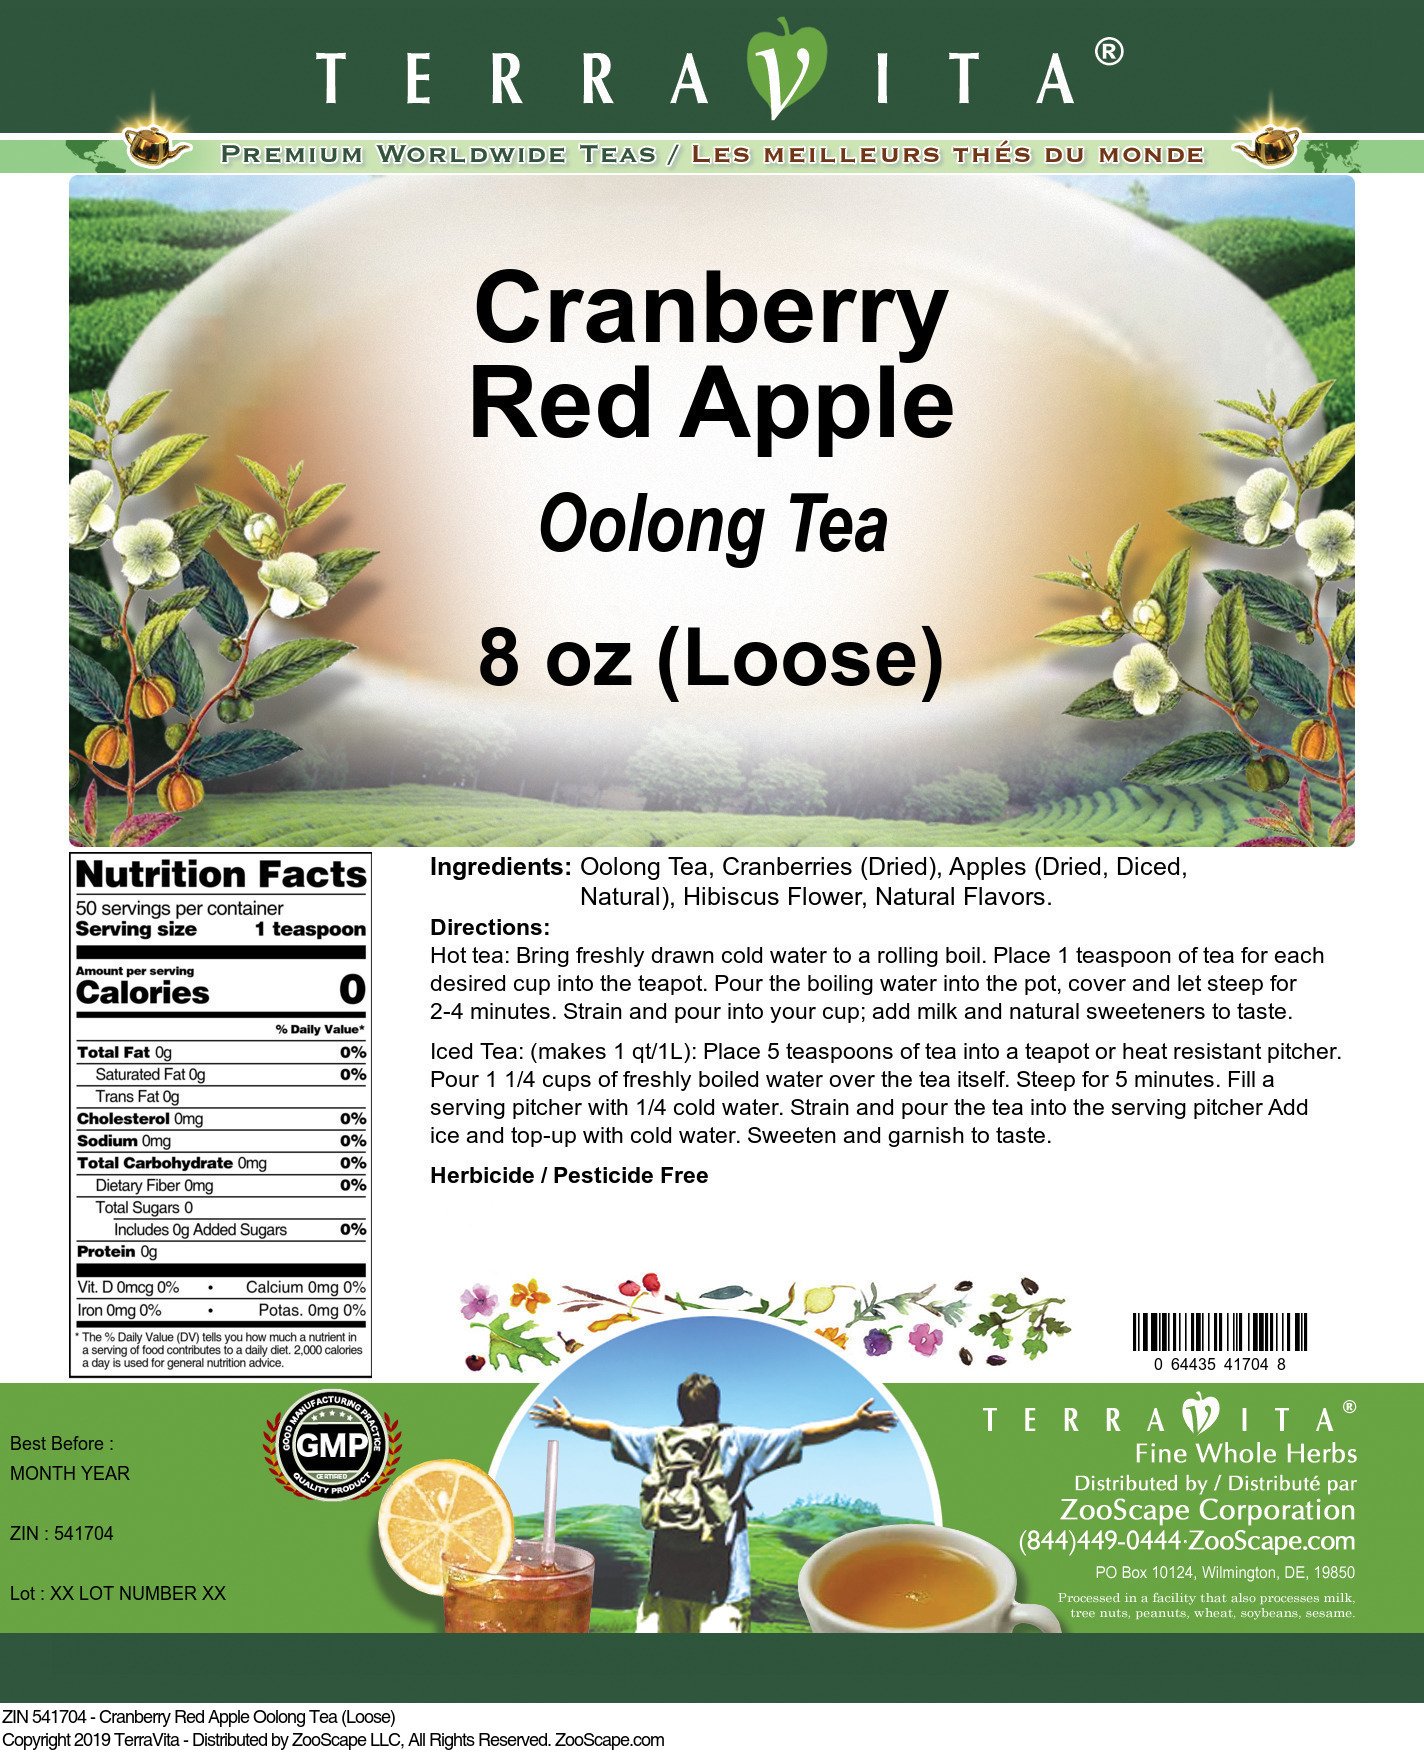 Cranberry Red Apple Oolong Tea (Loose)